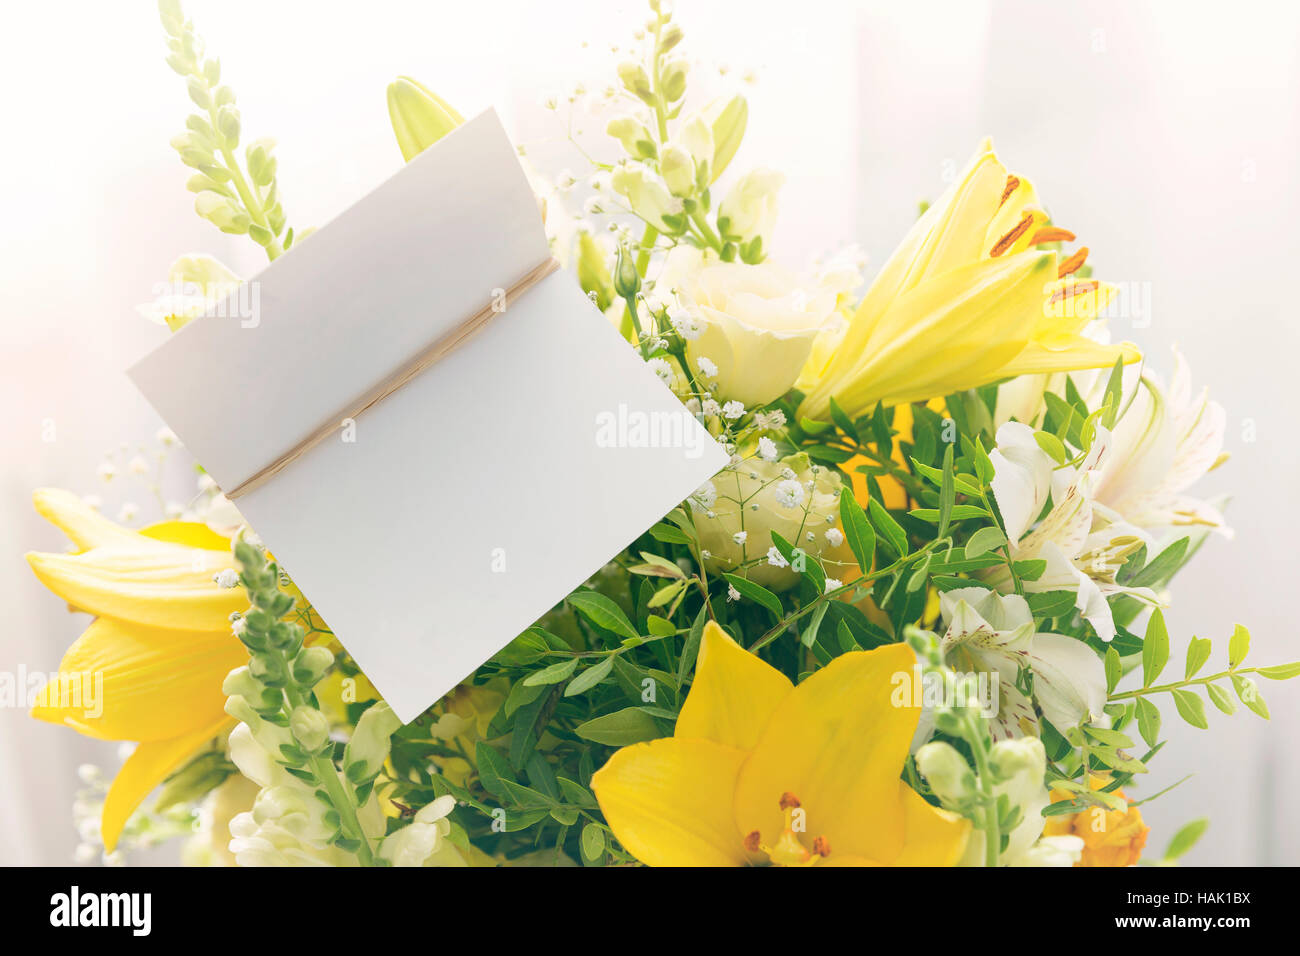 Flower Bouquet With A Blank Greeting Card Stock Photo 127037342 Alamy